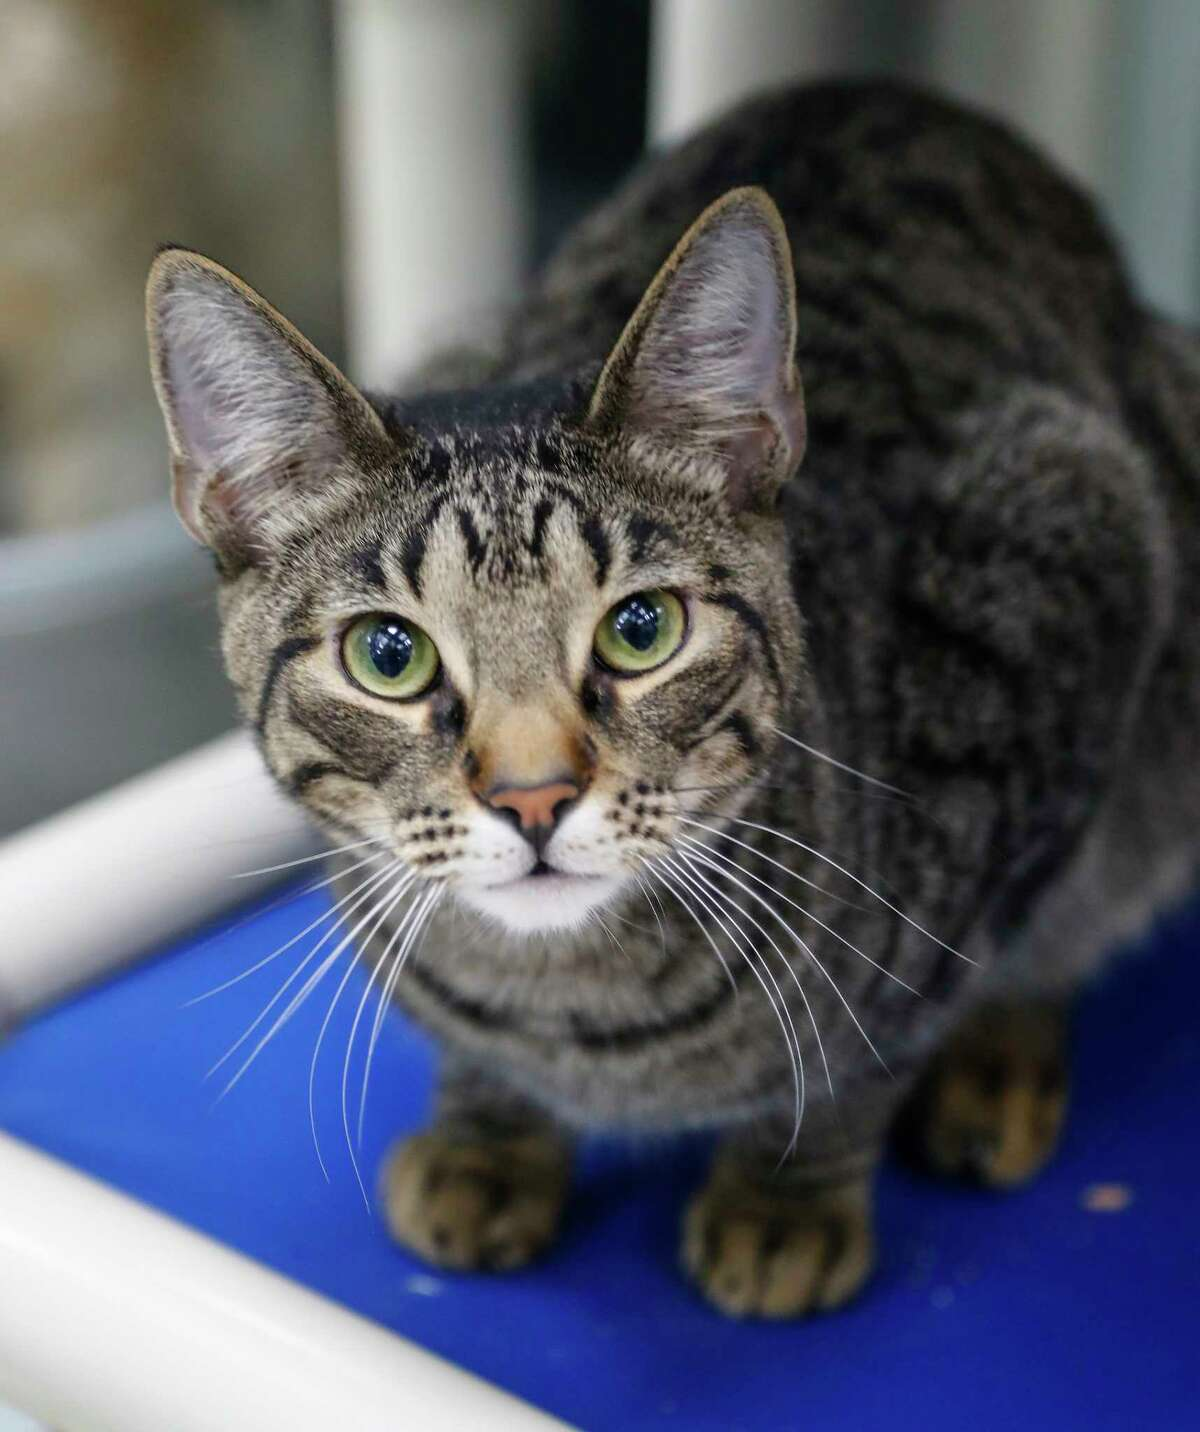 Tony (ID: 45424400 ) is a 8-month-old, male, brown tabby Domestic Shorthair cat who is available for adoption from the Houston Humane Society. Tony came to Houston as a transfer from Louisiana, as a Hurricane Laura survivor. His favorite toy is anything with a feather on it, and gets along with other cats. He is also described by the staff as an expert fly catcher!